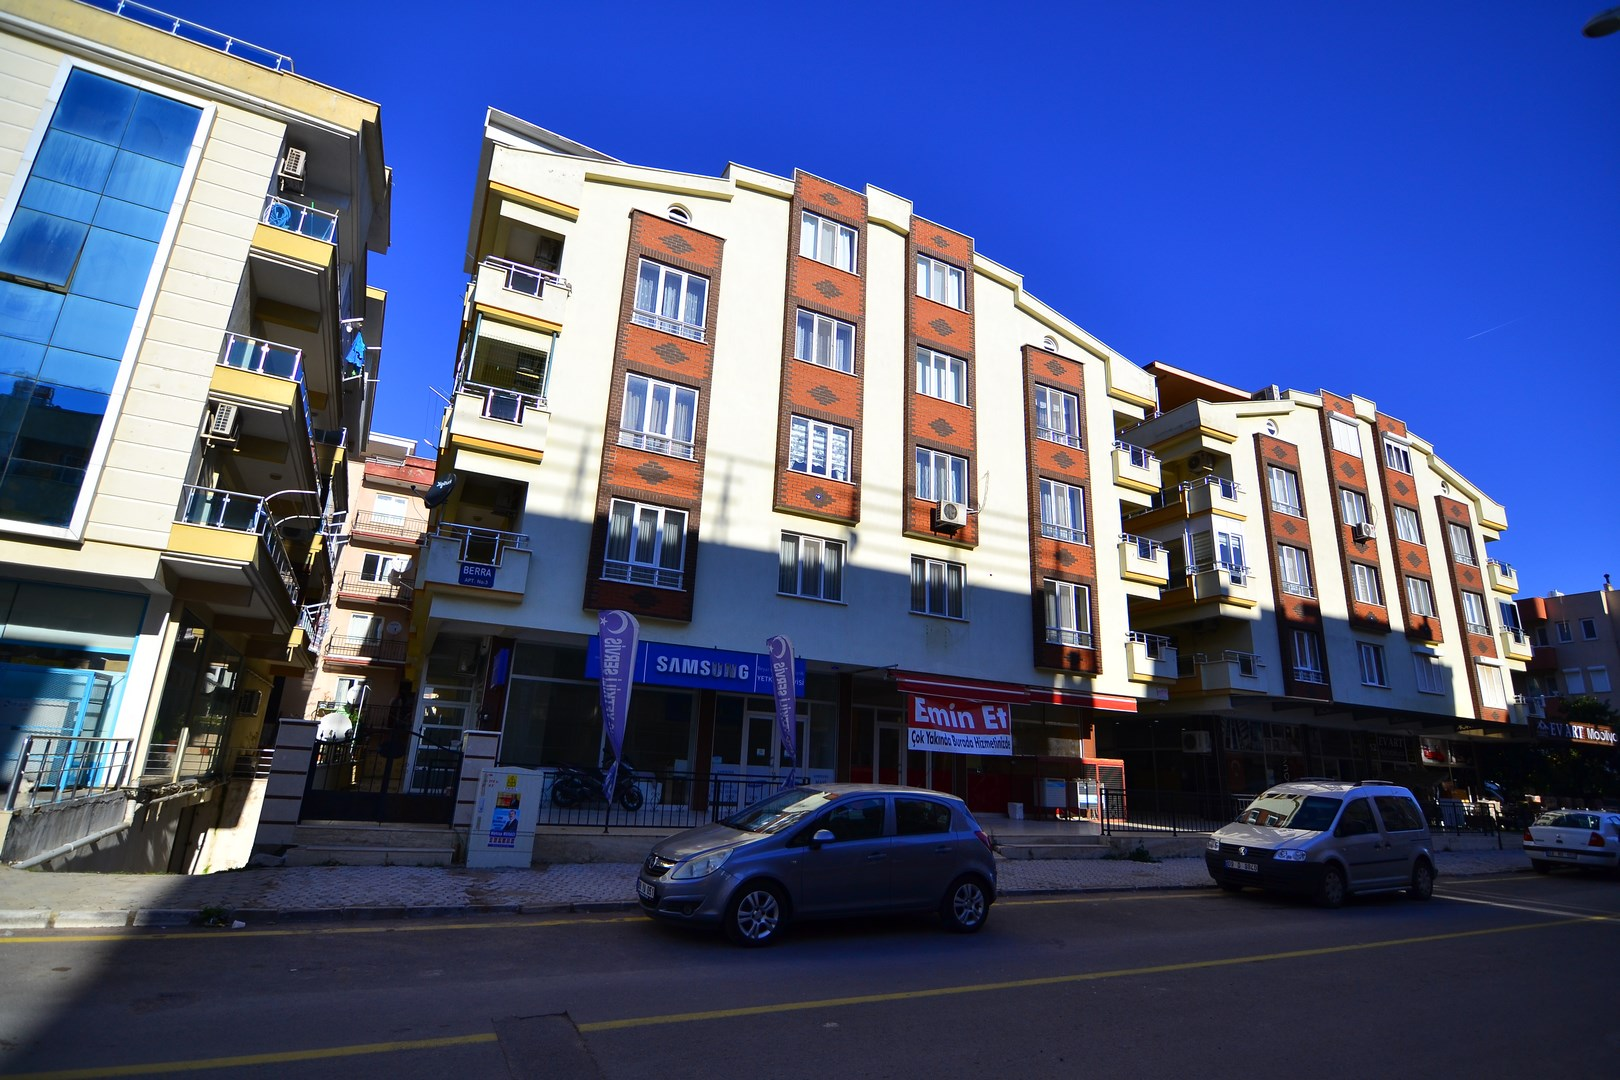 3 Bedroom apartment for sale in Didim (SOLD NOW)